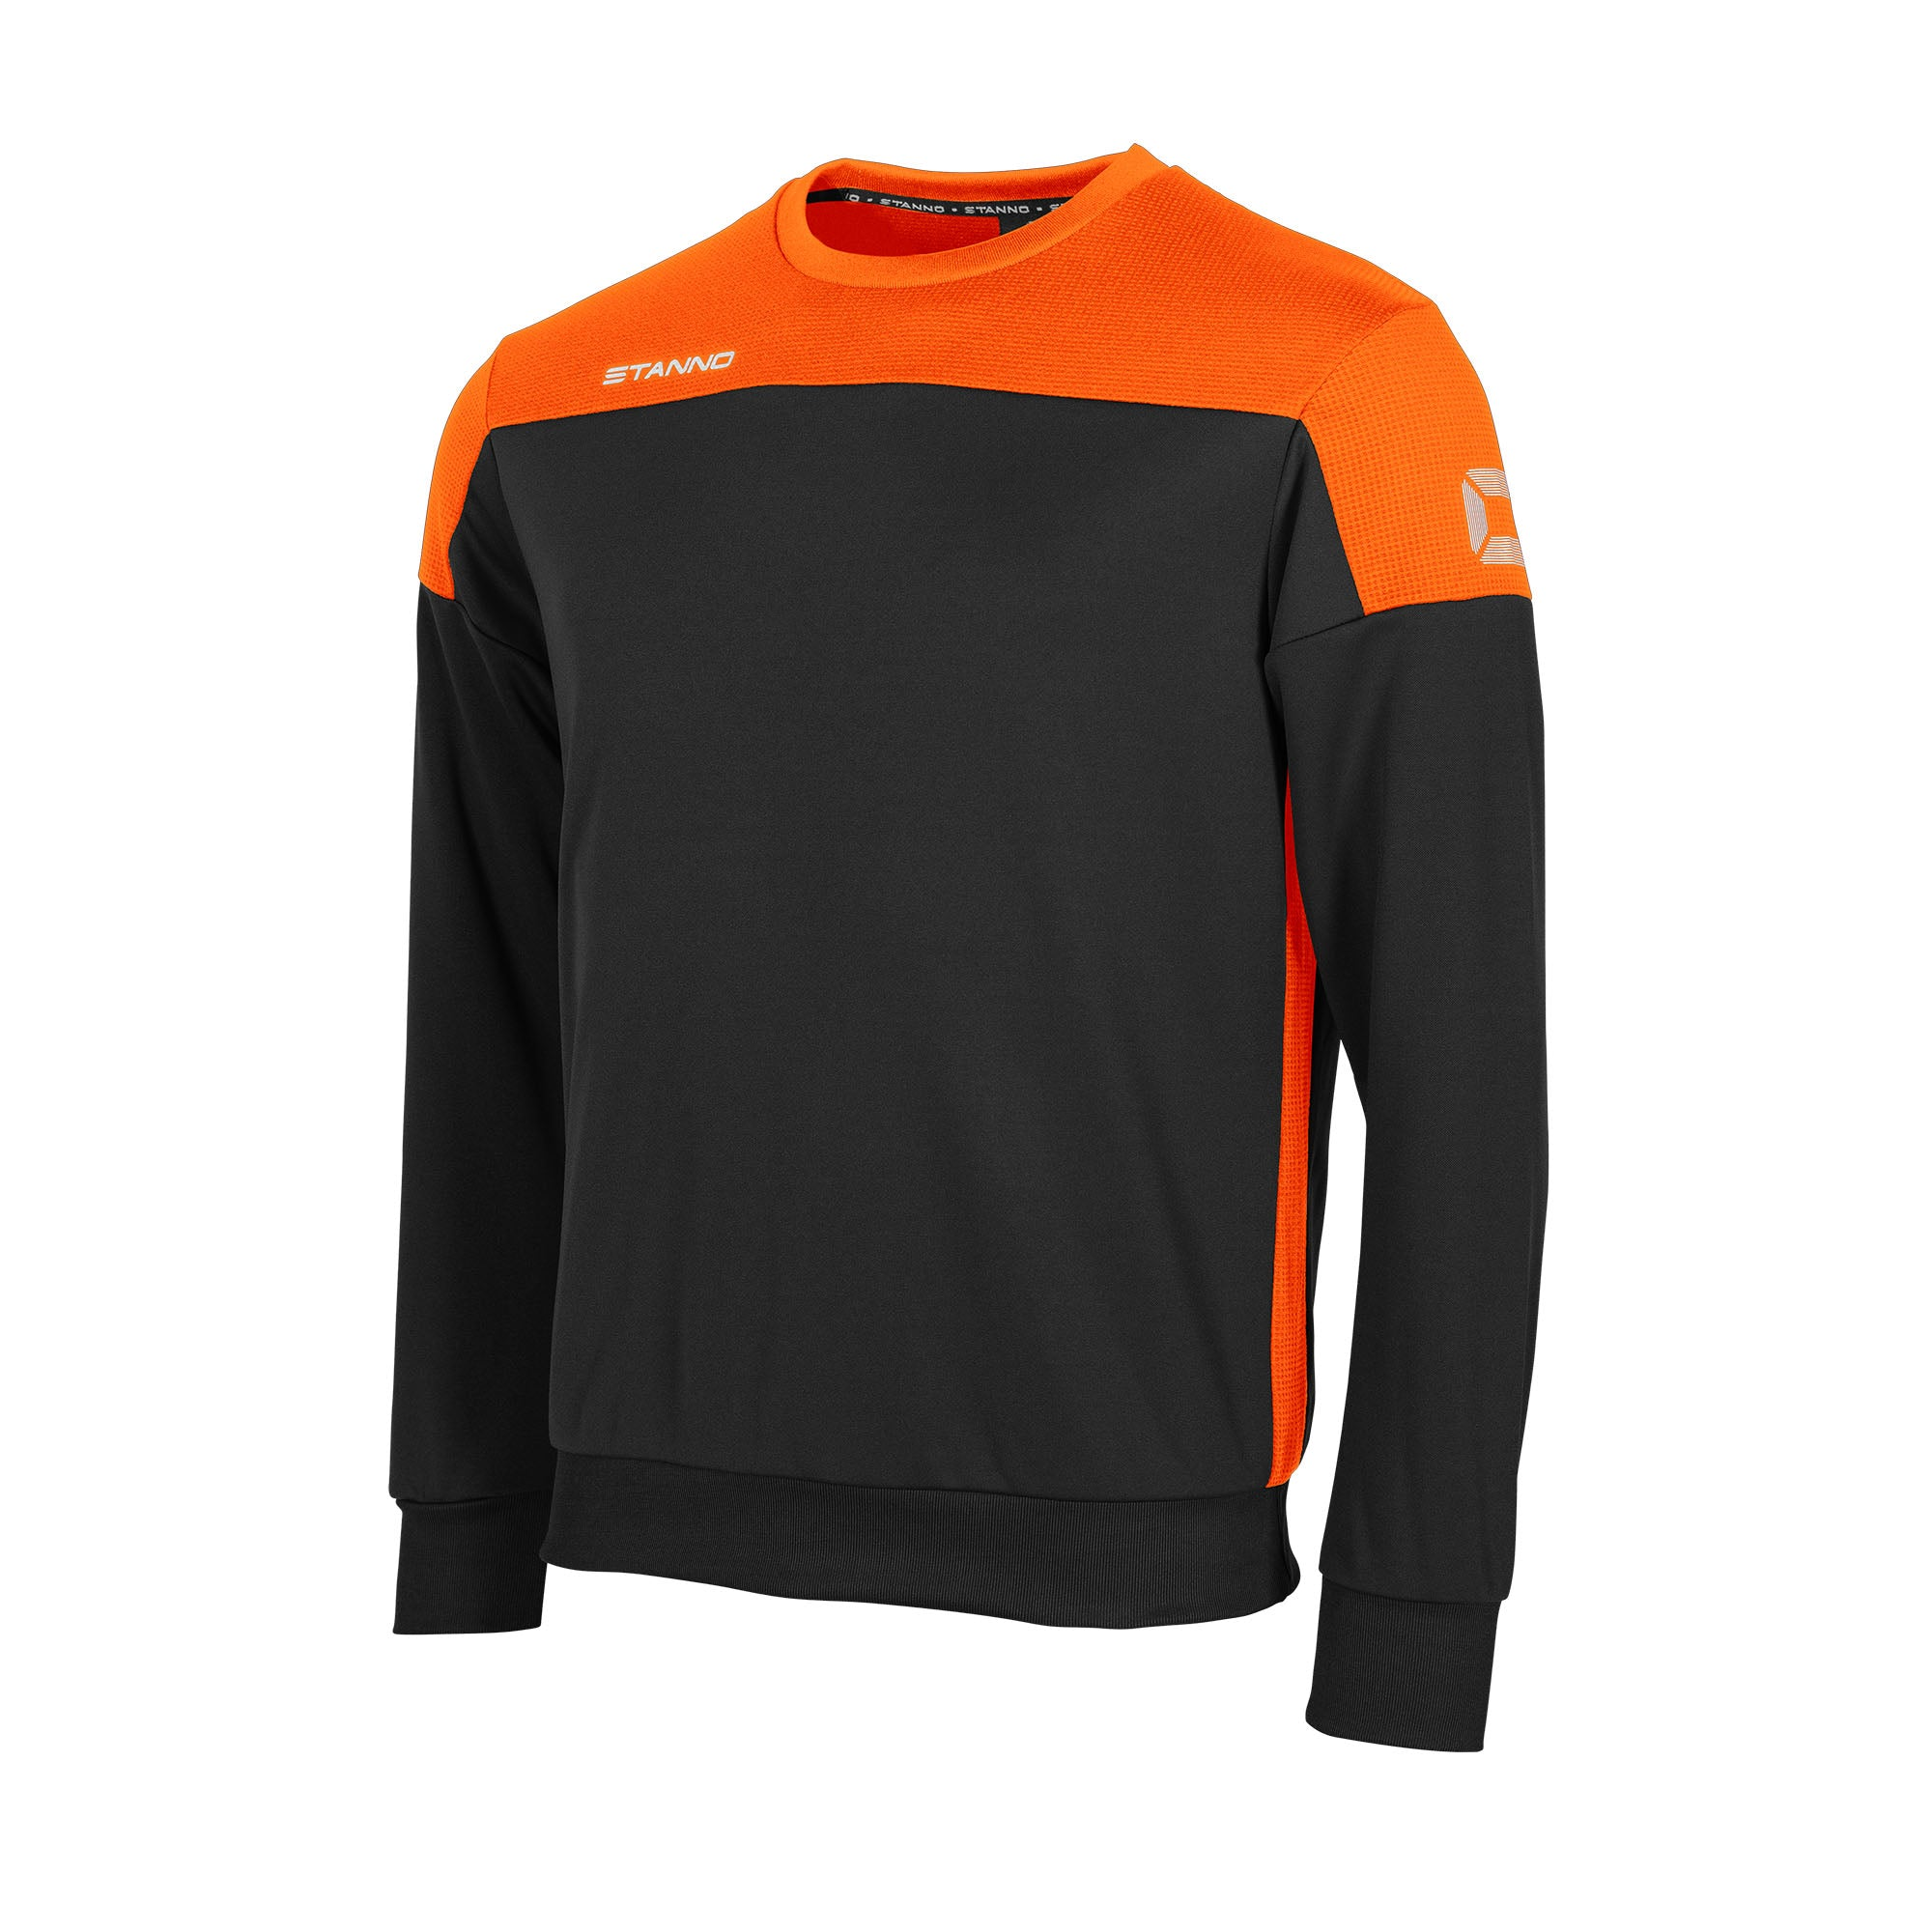 Stanno Pride round neck sweatshirt in black, with mesh contrast orange shoulder and side panel